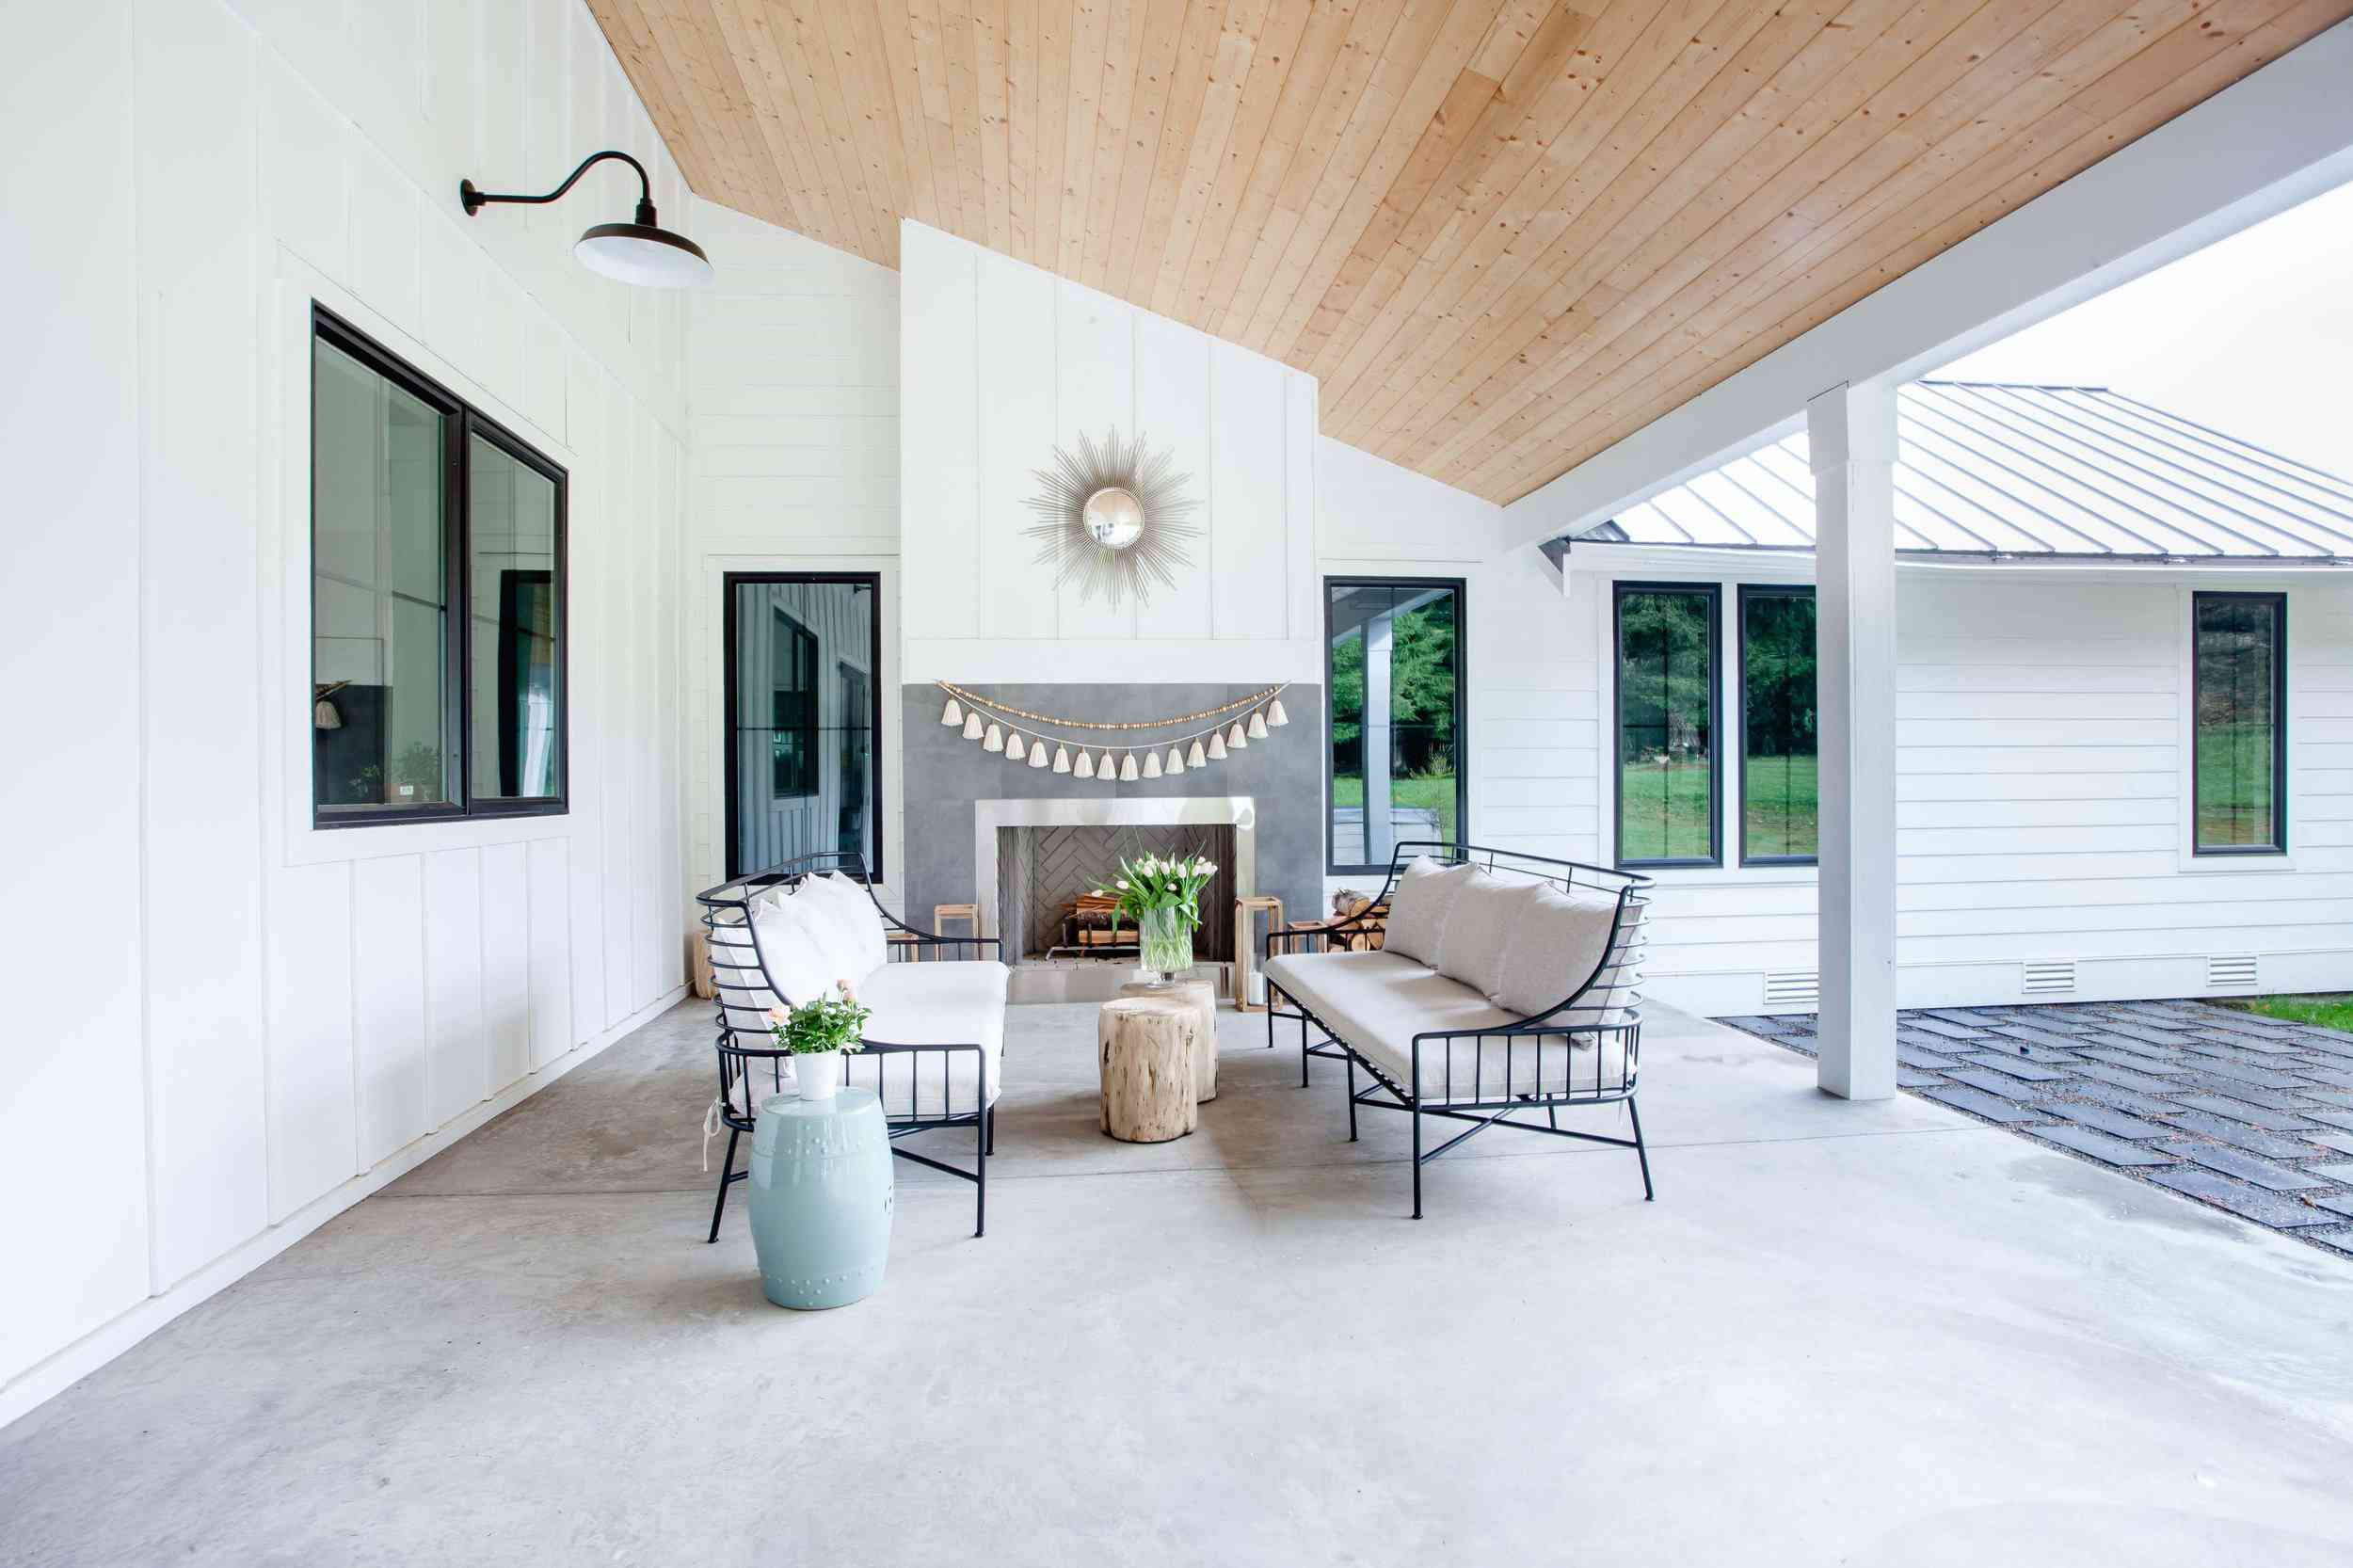 A covered patio with an outdoor fireplace that's been decorated with a fringe-lined garland